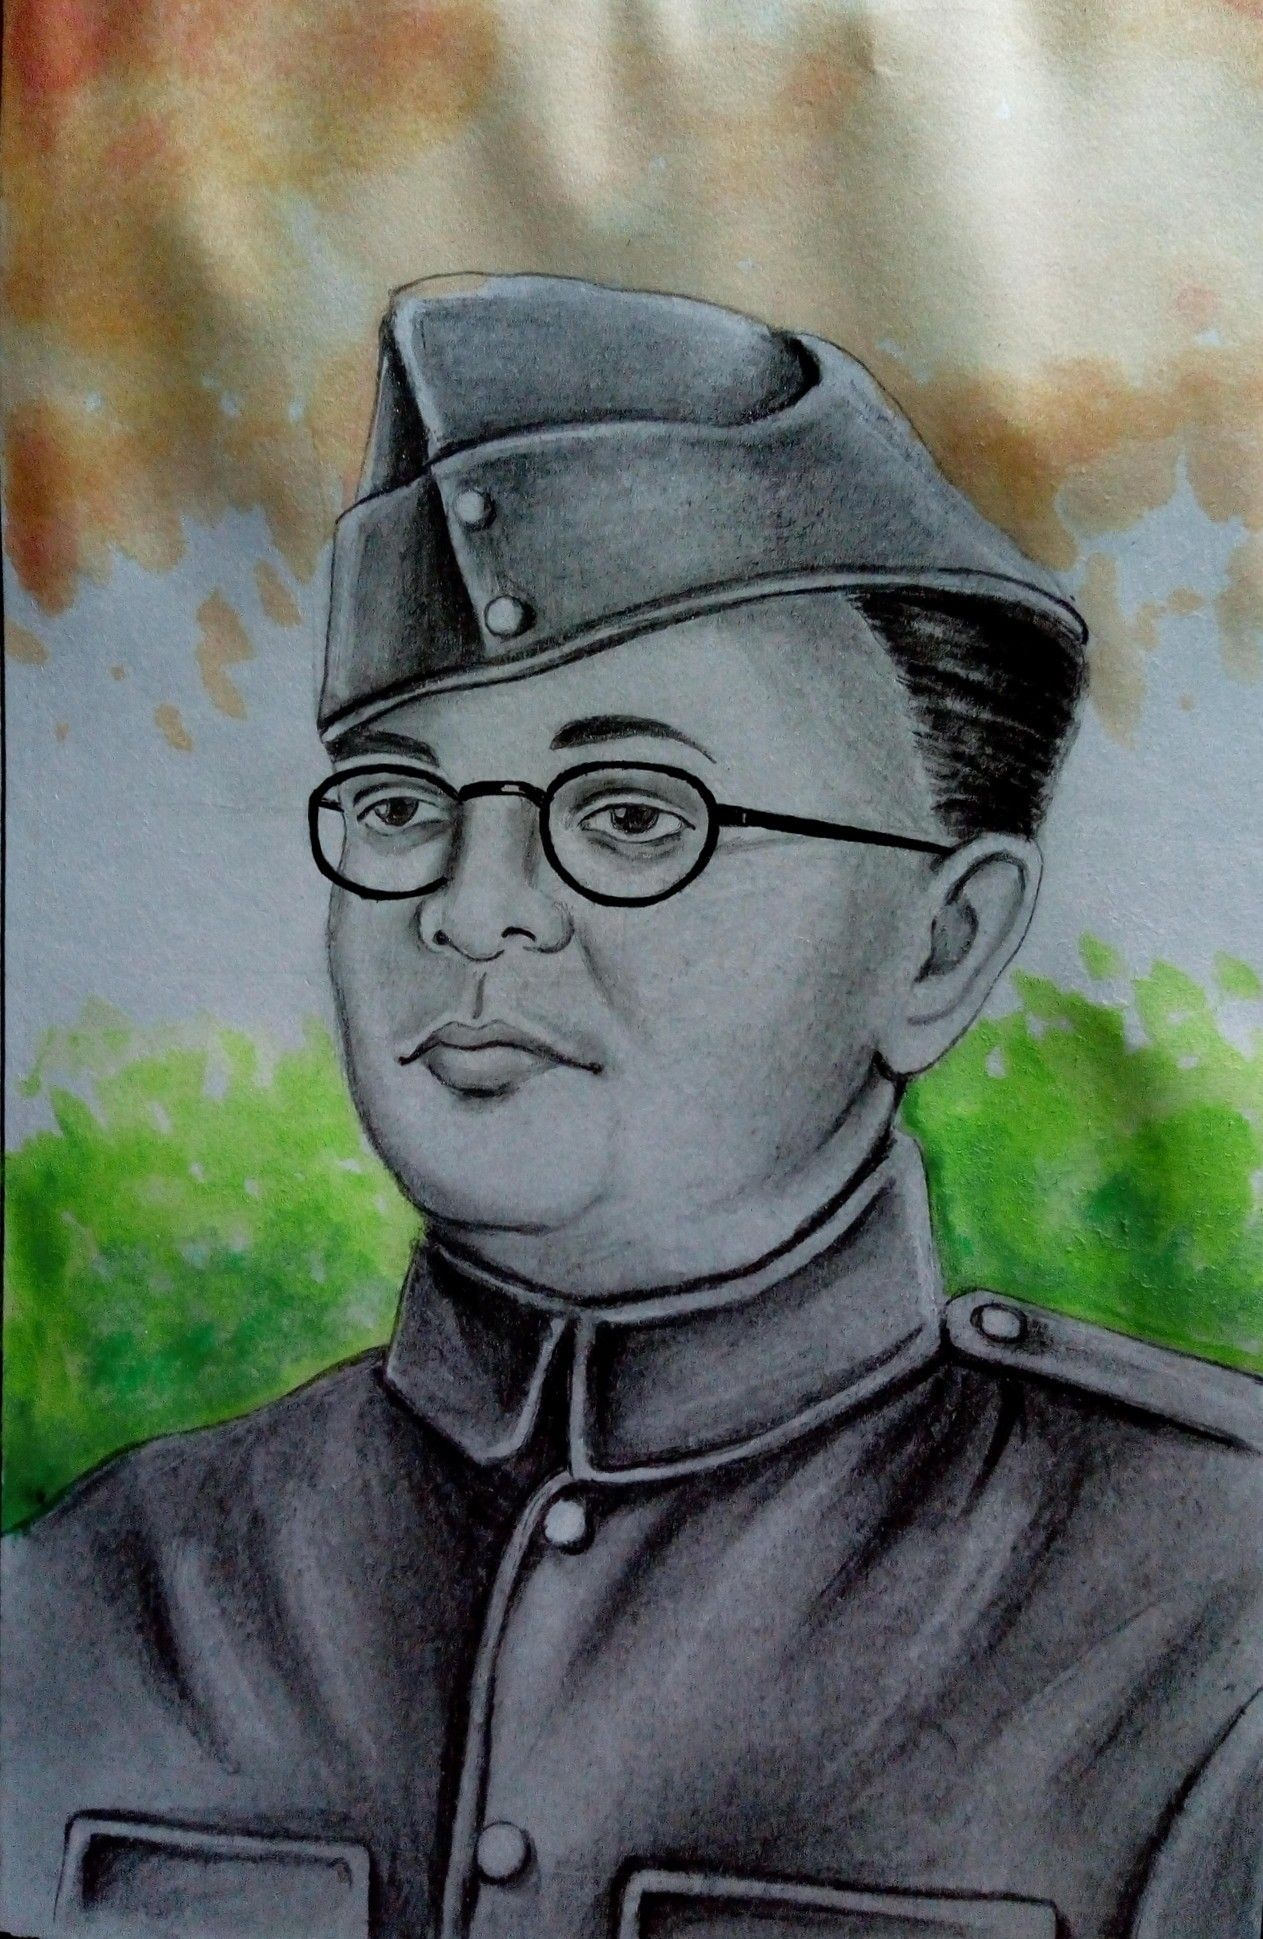 Subhash chandra bose sumit sketch art in 2019 pencil drawings